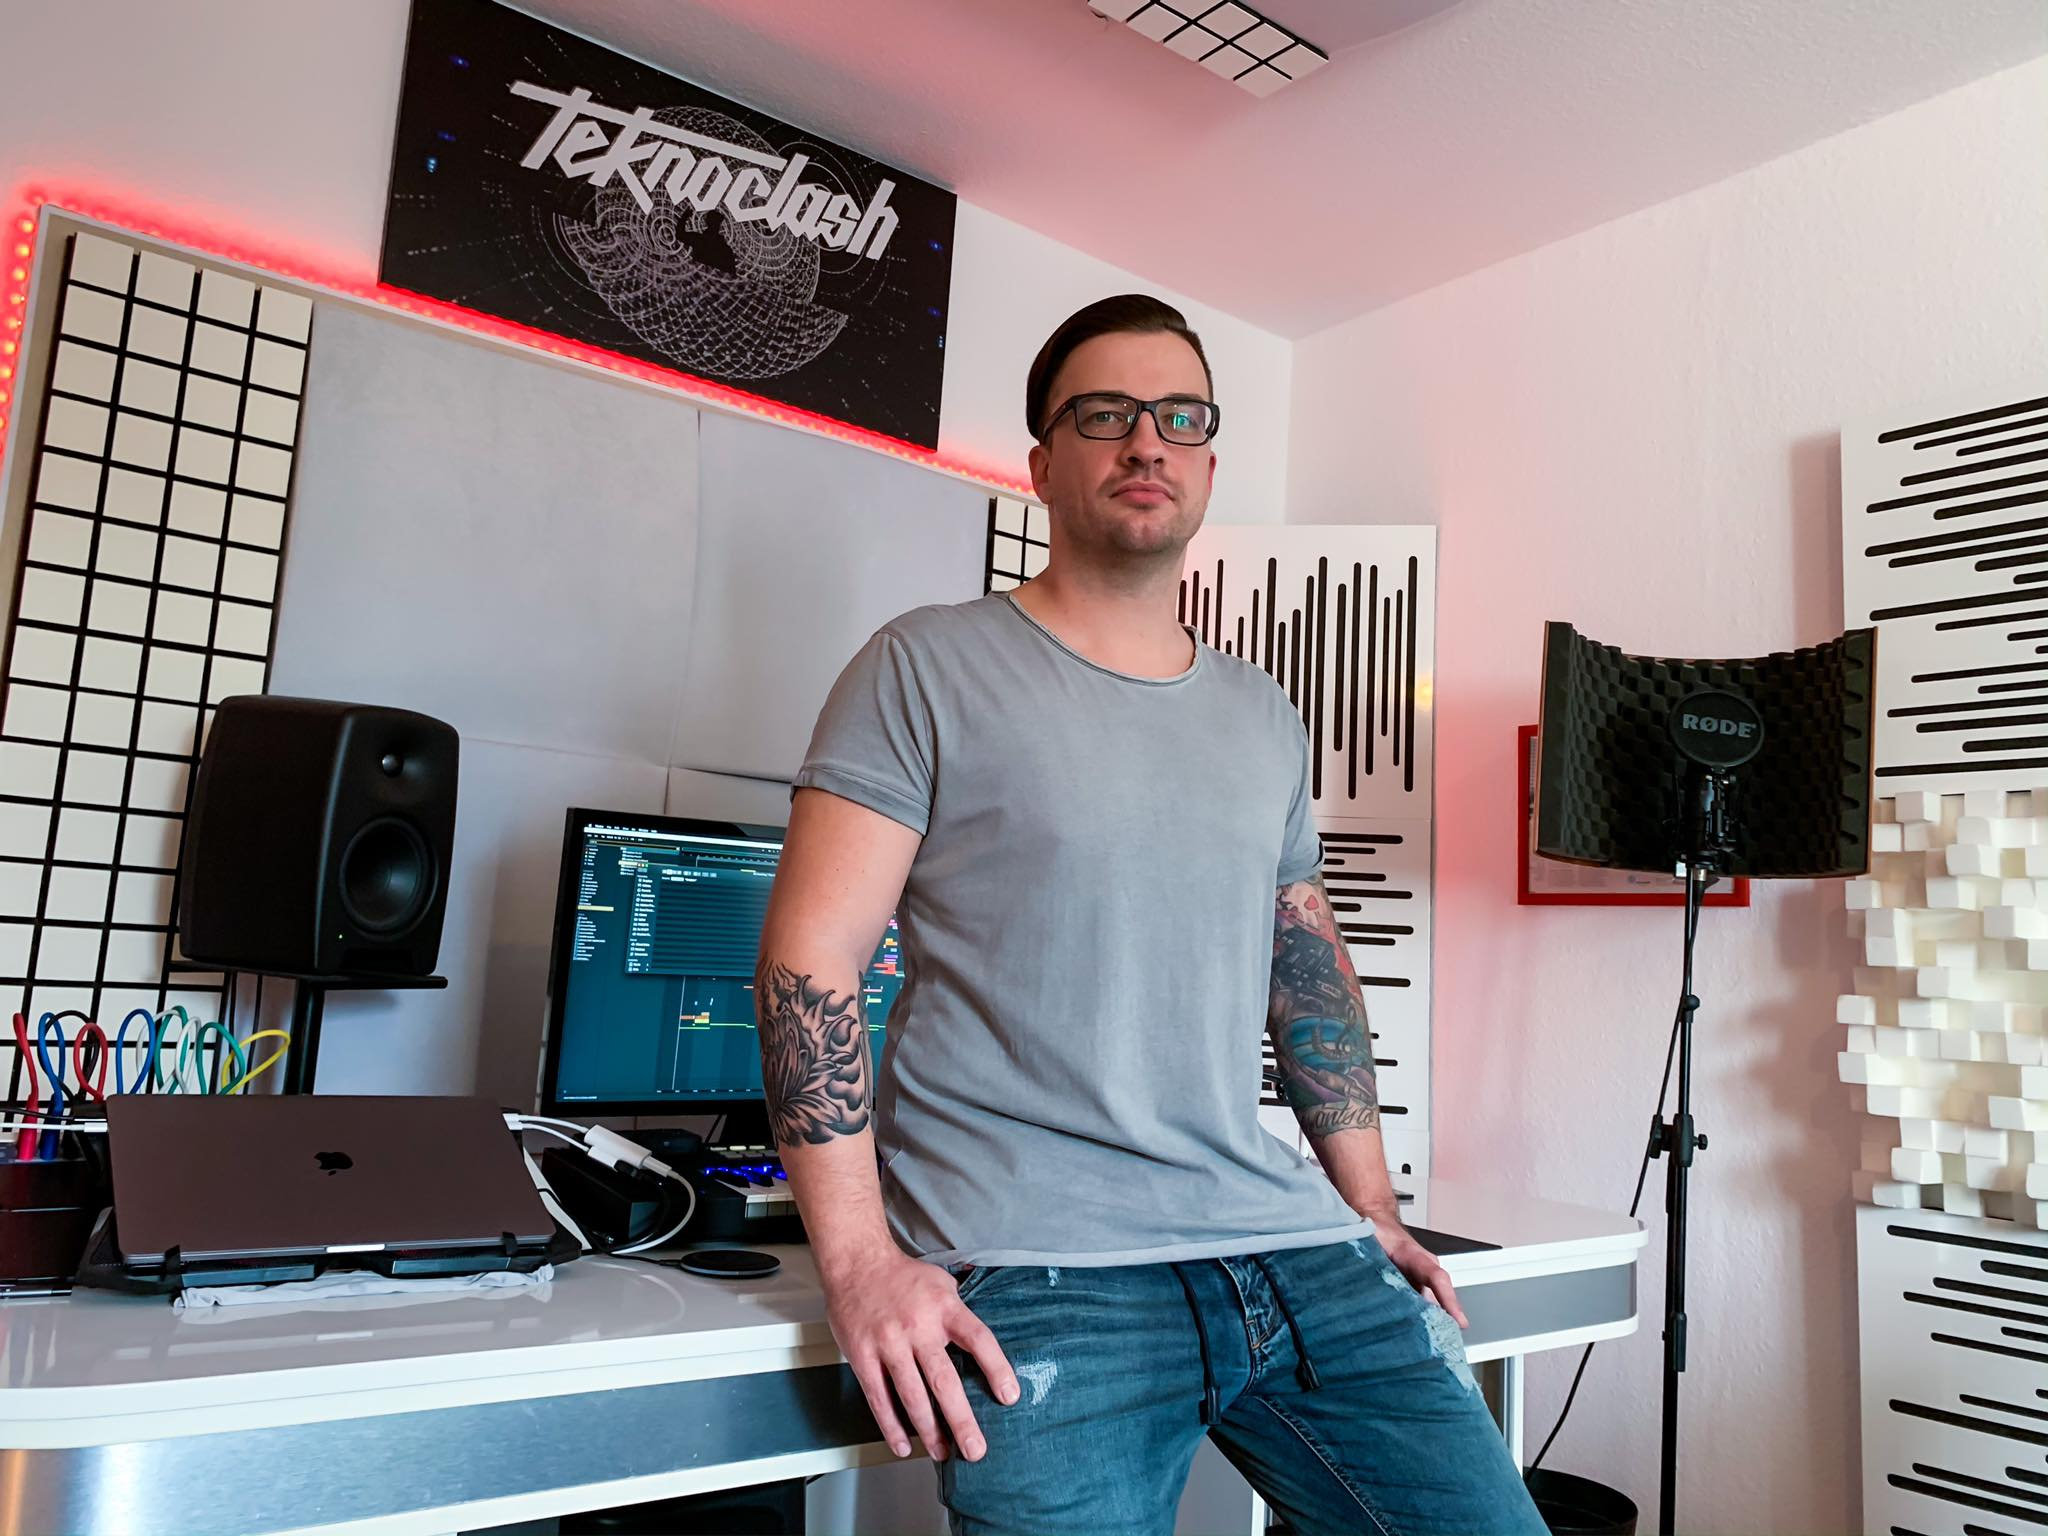 teknoclash in his studio